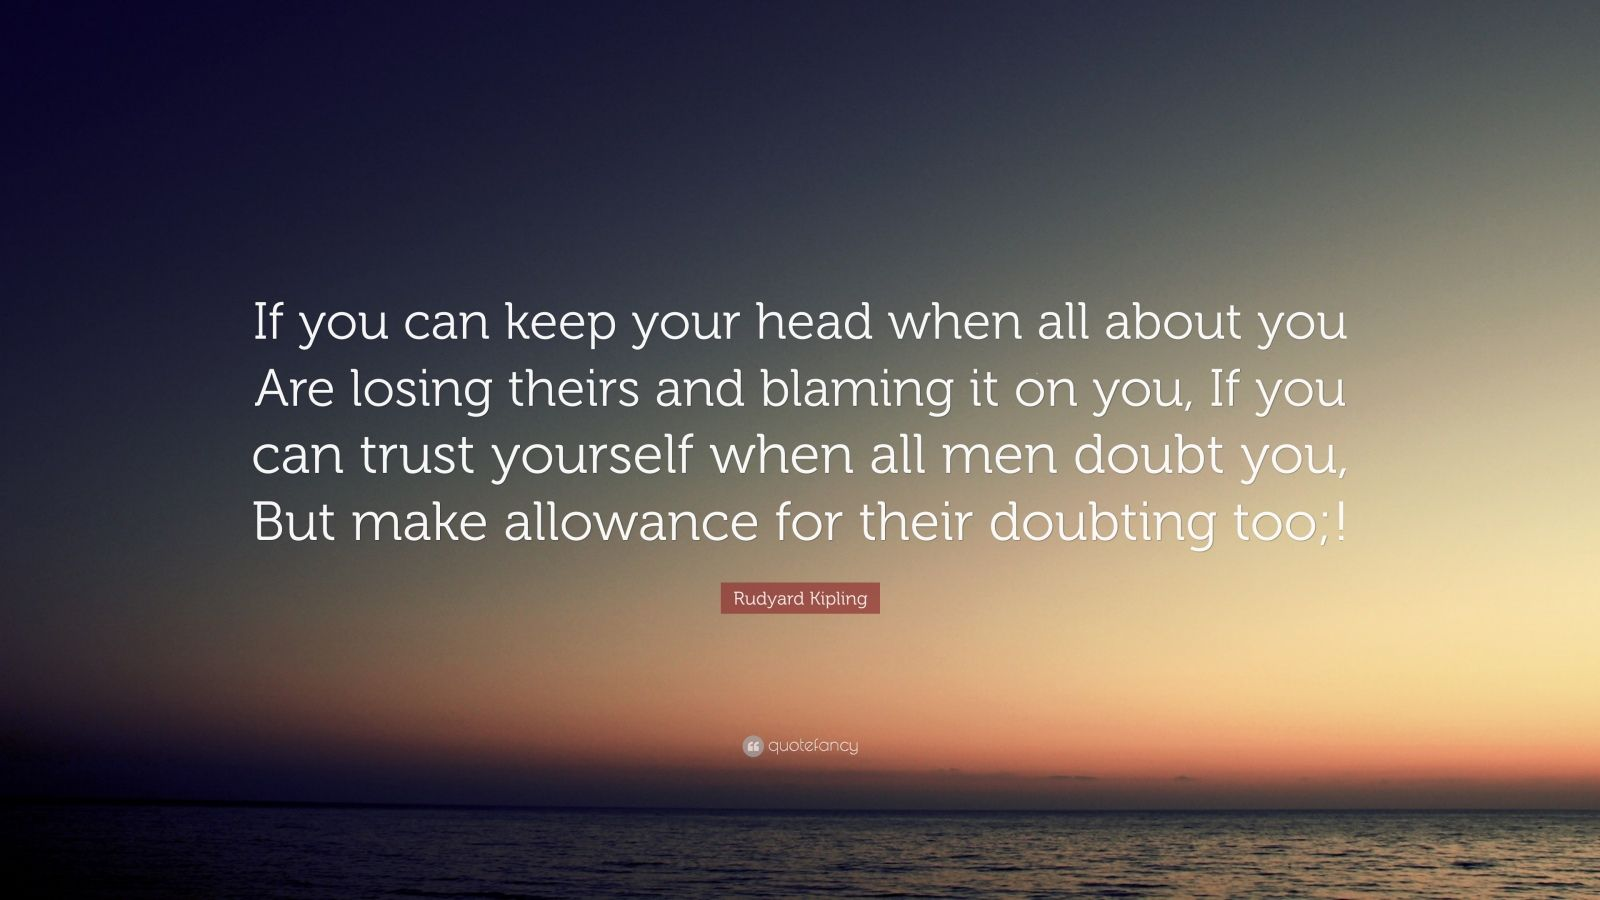 "Rudyard Kipling Quote: ""If you can keep your head when all about you Are losing theirs and blaming it on you, If you can trust yourself when all men doubt you, But make allowance for their doubting too;!"""